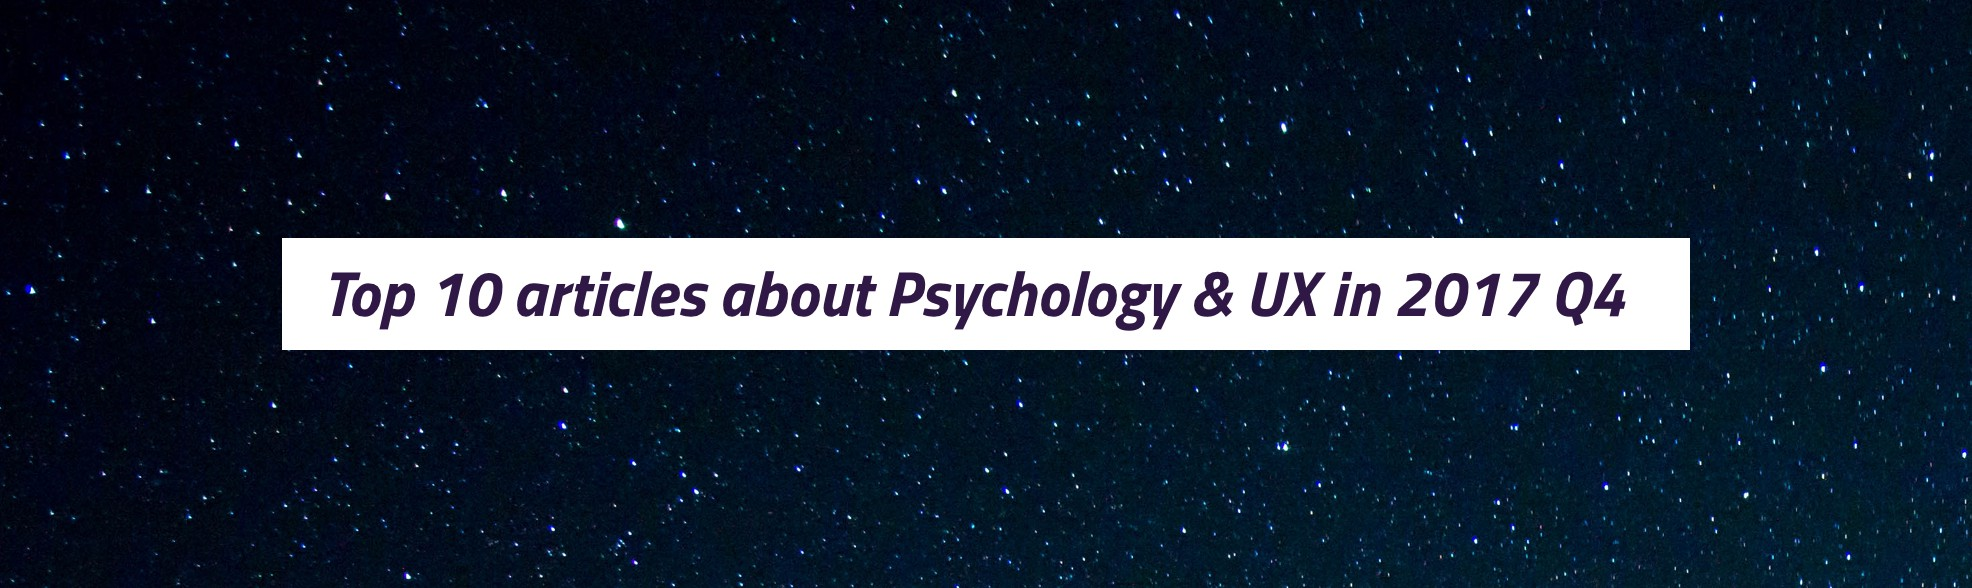 Top 10 articles about Psychology & UX in 2017 Q4